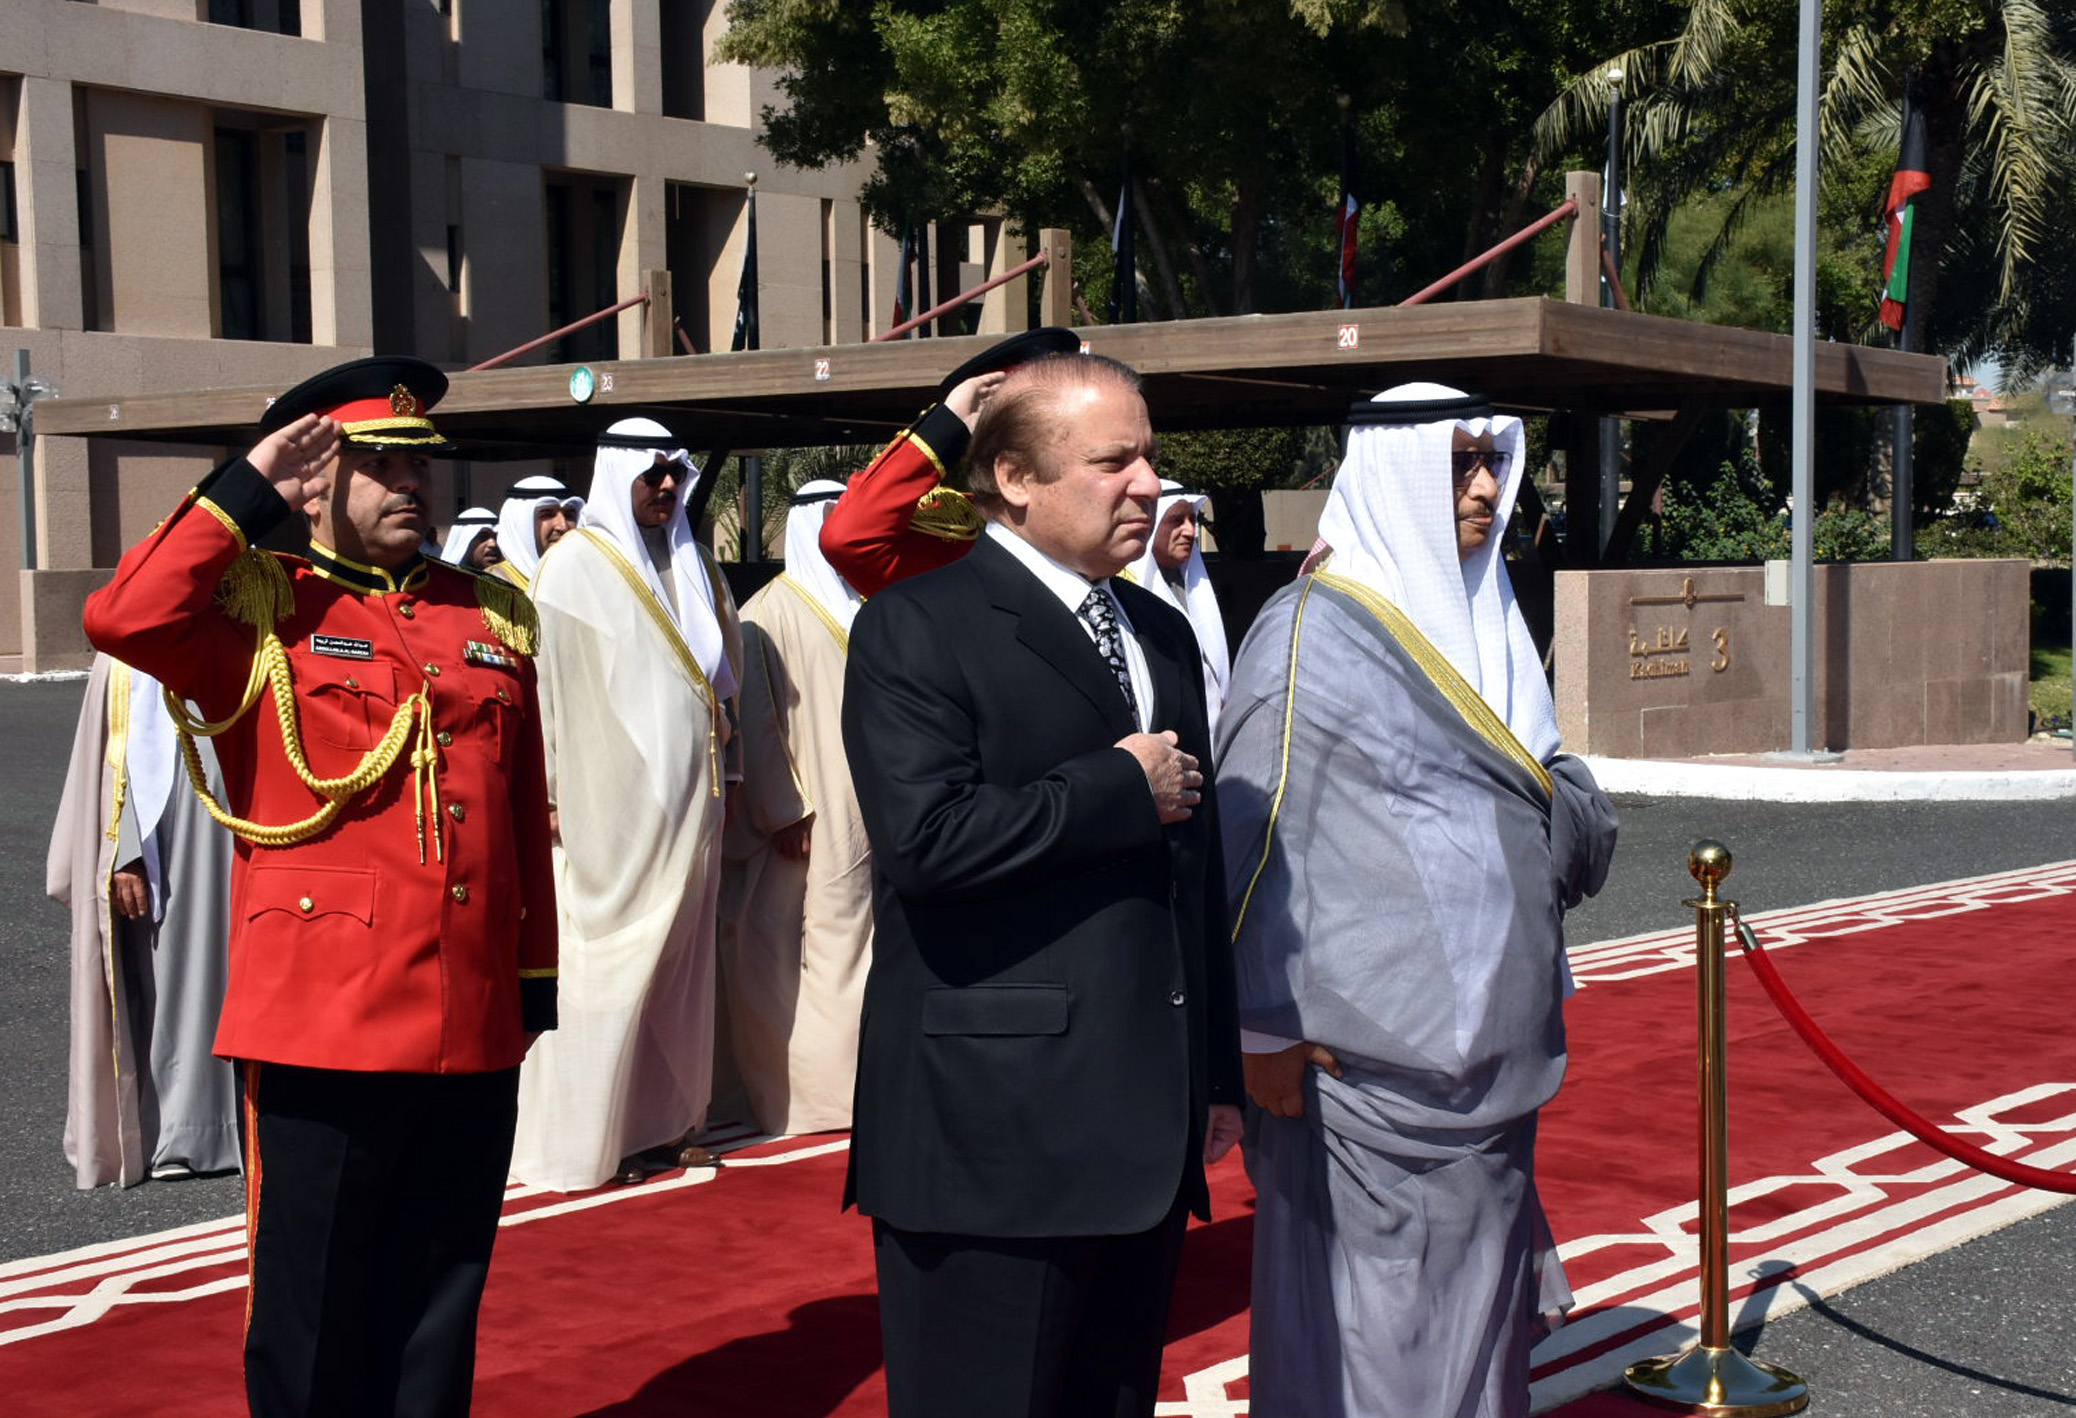 PRIME MINISTER MUHAMMAD NAWAZ SHARIF AND H.H. SHEIKH JABER AL-MUBARAK AL-HAMAD AL-SABAH PRIME MINISTER OF THE STATE OF KUWAIT LISTEN TO THE NATIONAL ANTHEMS OF BOTH THE COUNTRIES DURING THE GUARD OF HONOR CEREMONY AT BAYAN PALACE ON 7TH MARCH 2017. PHOTO: INP